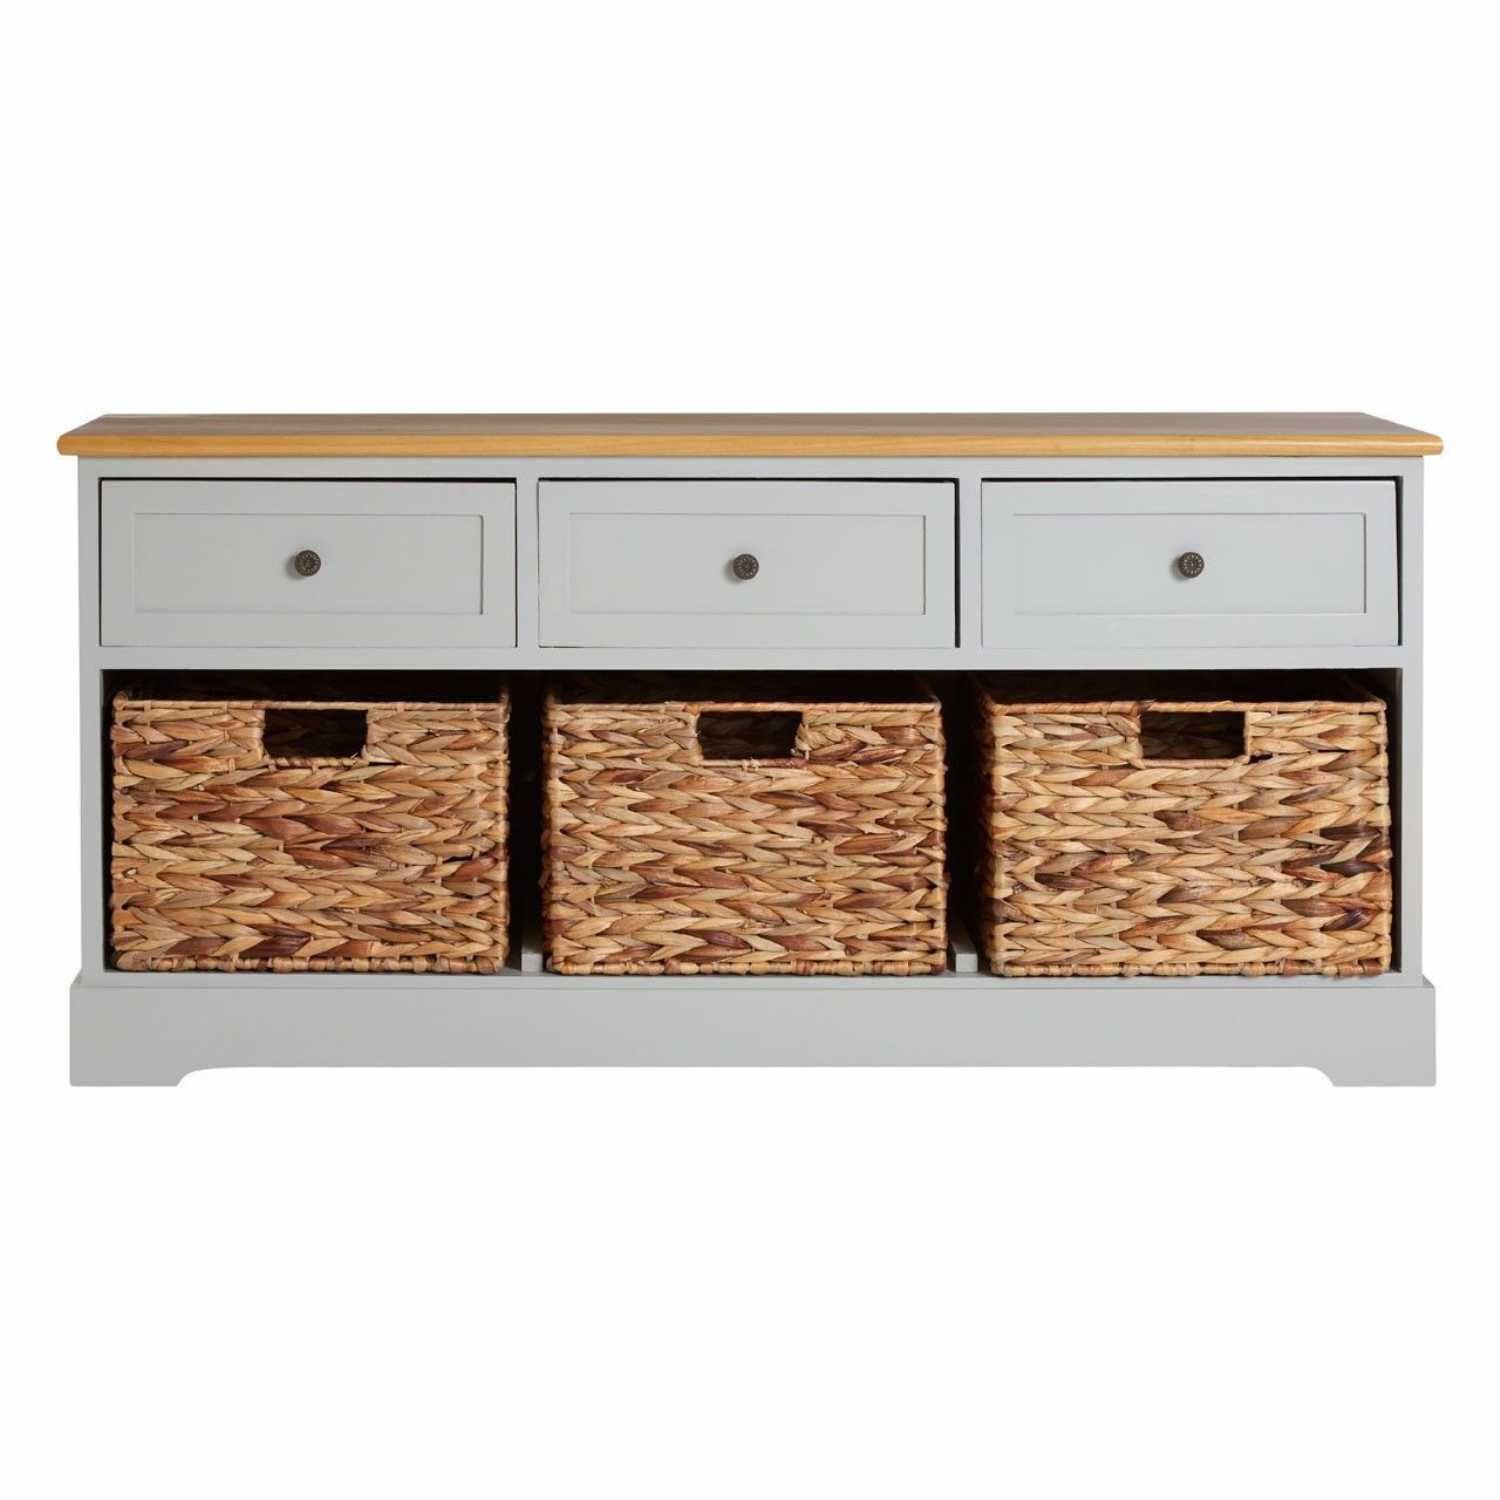 . modern vermont grey painted storage bench with  basket drawers